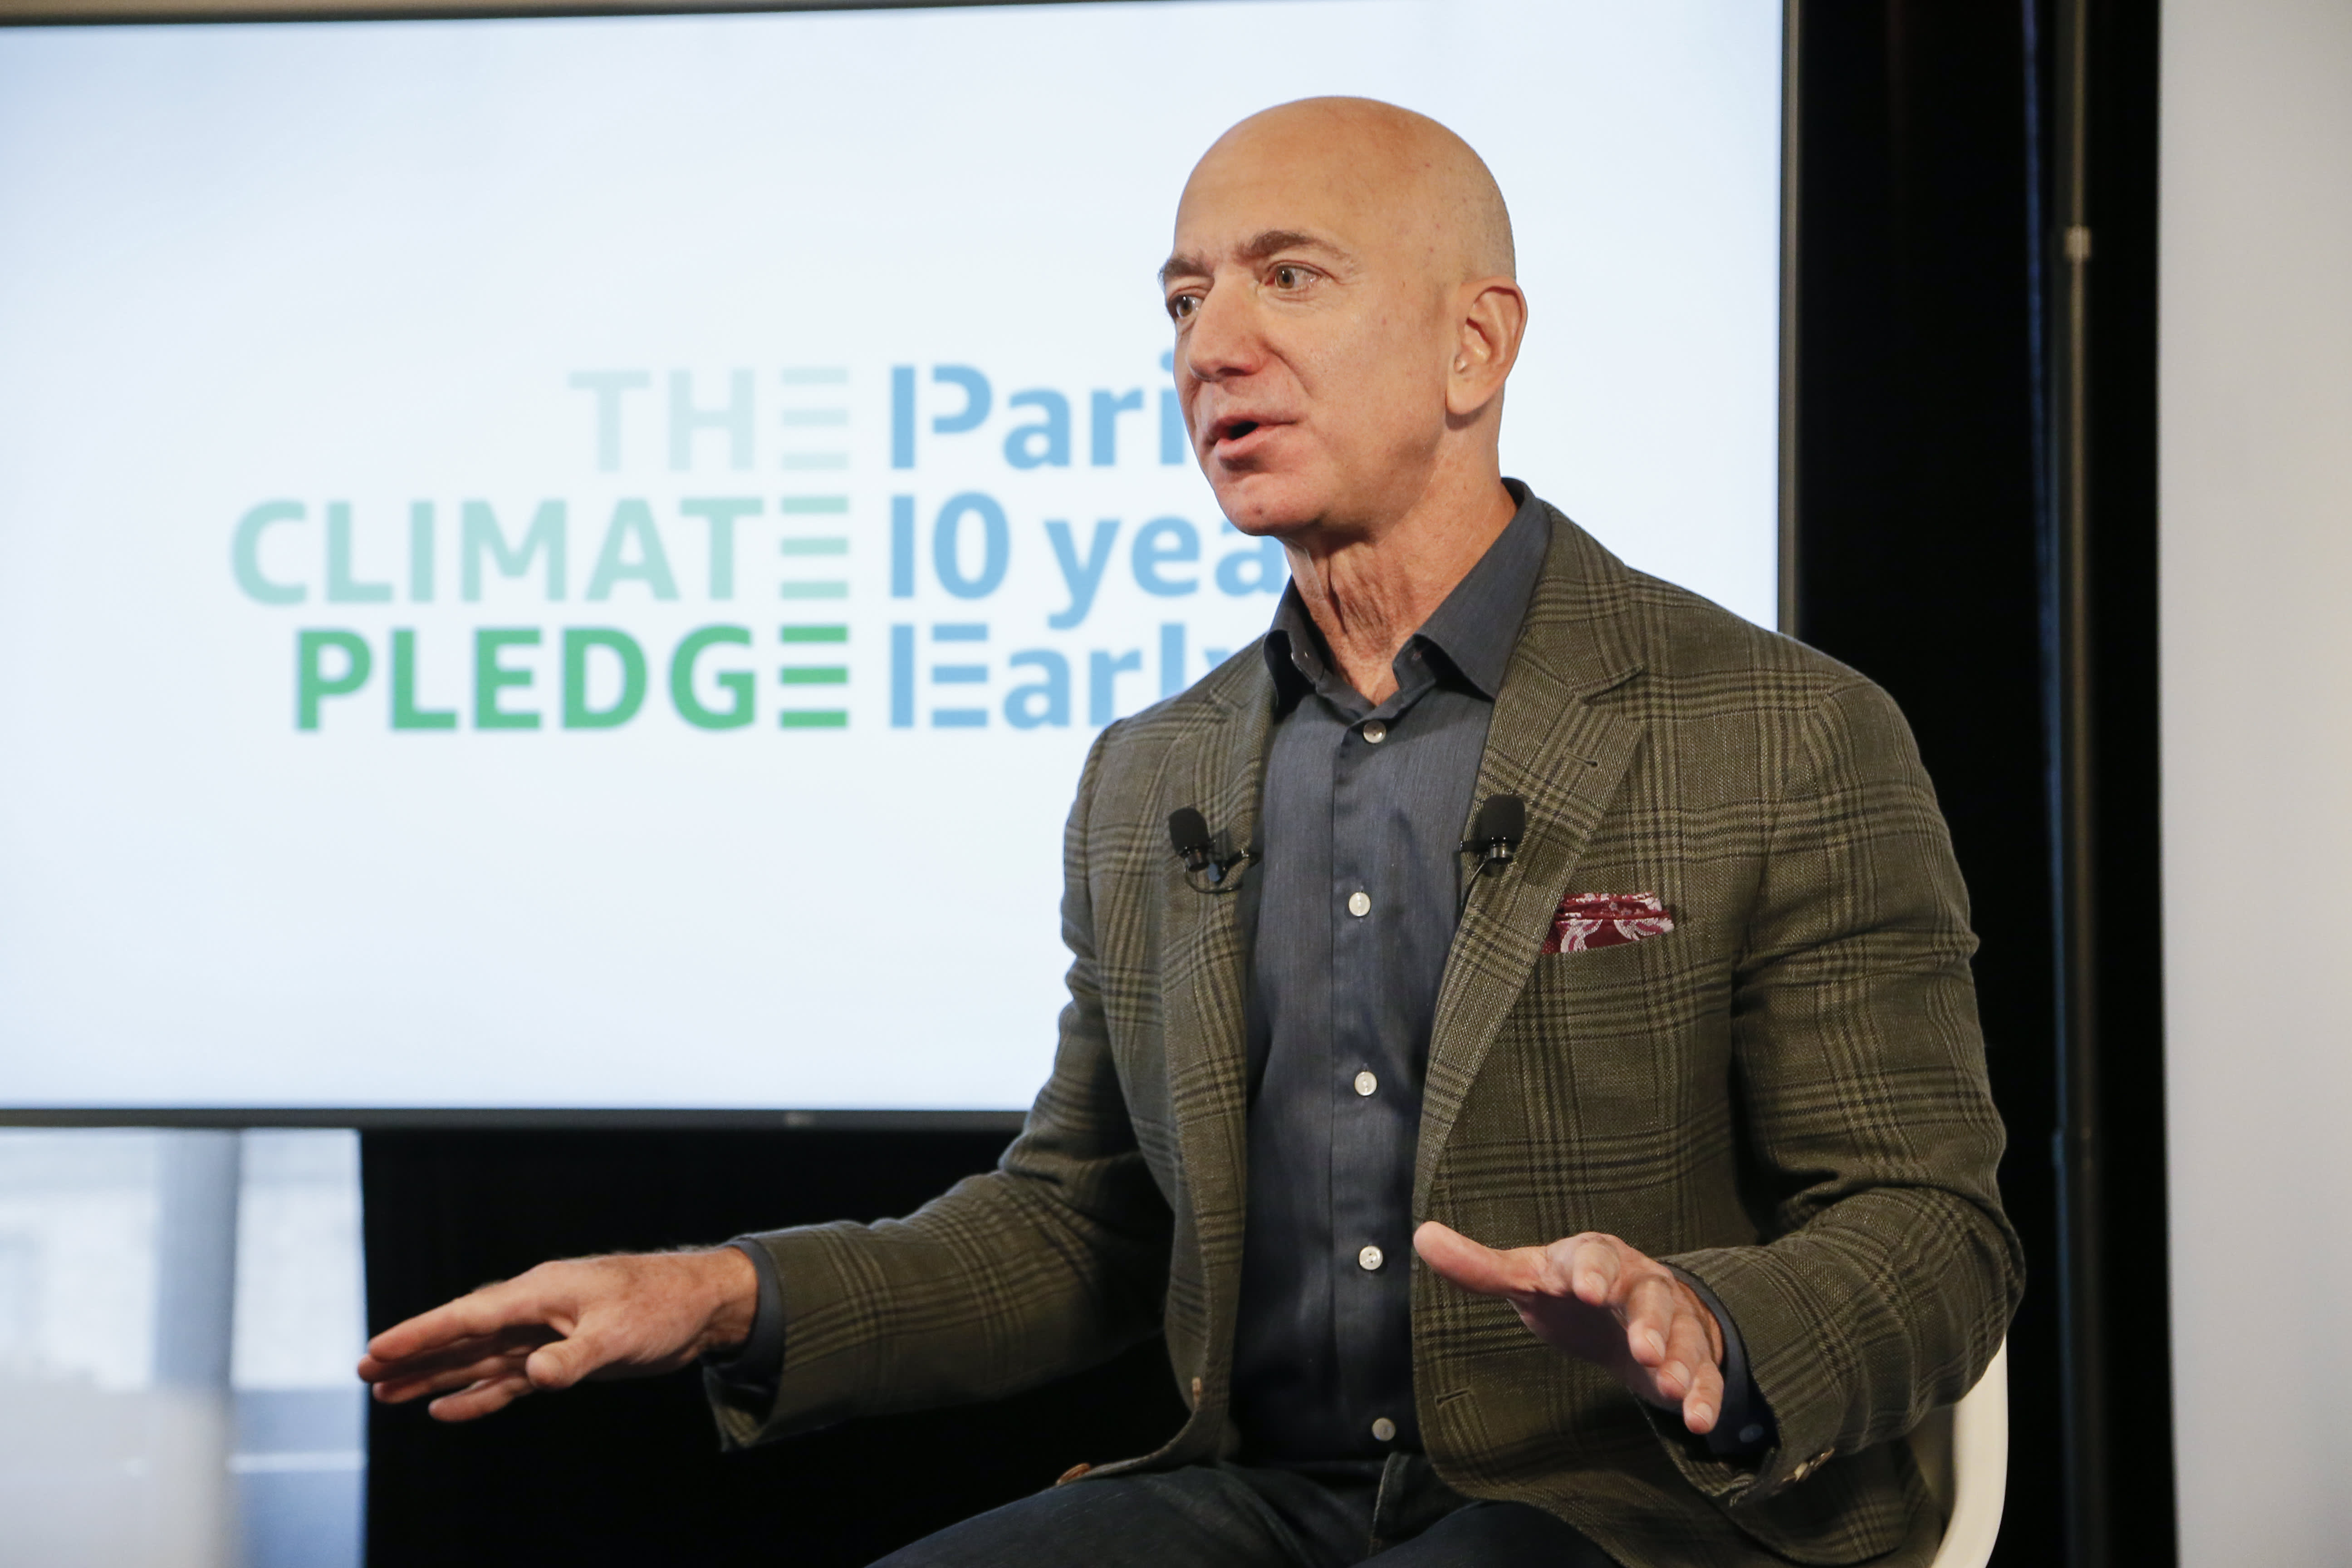 IBM is one of 20 companies joining The Climate Pledge, a commitment to go green started by Amazon and Jeff Bezos - CNBC